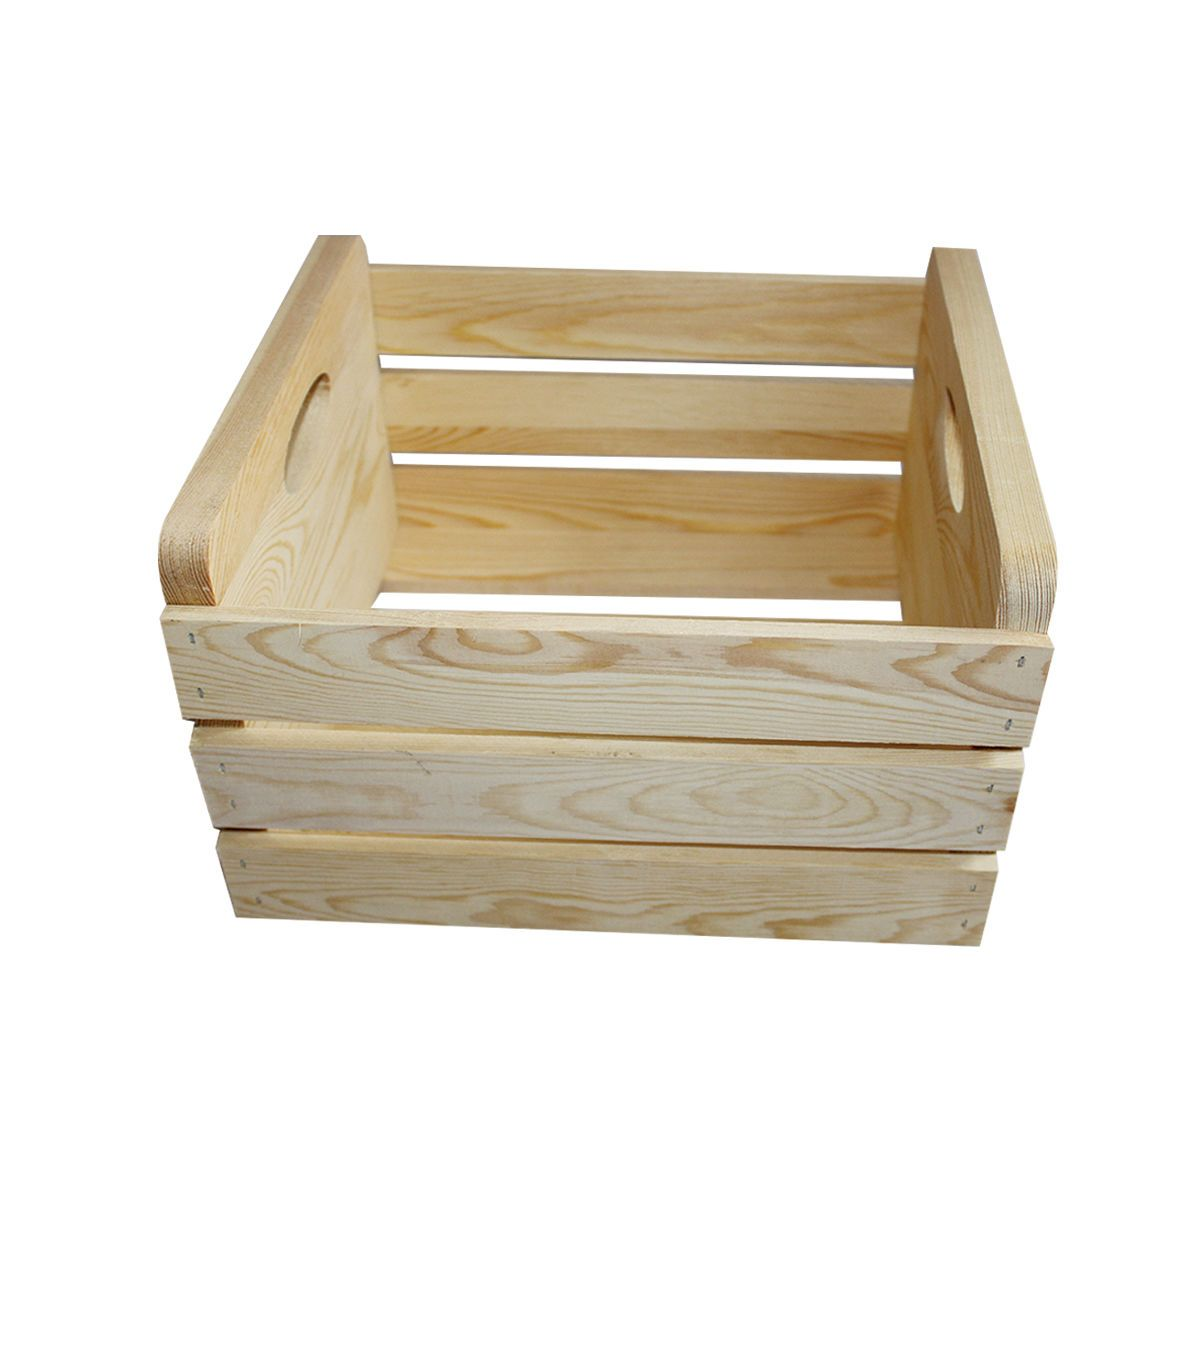 Large Basic Pine Wood Crate With Handles Wood Crates Unfinished Wood Crates Crates